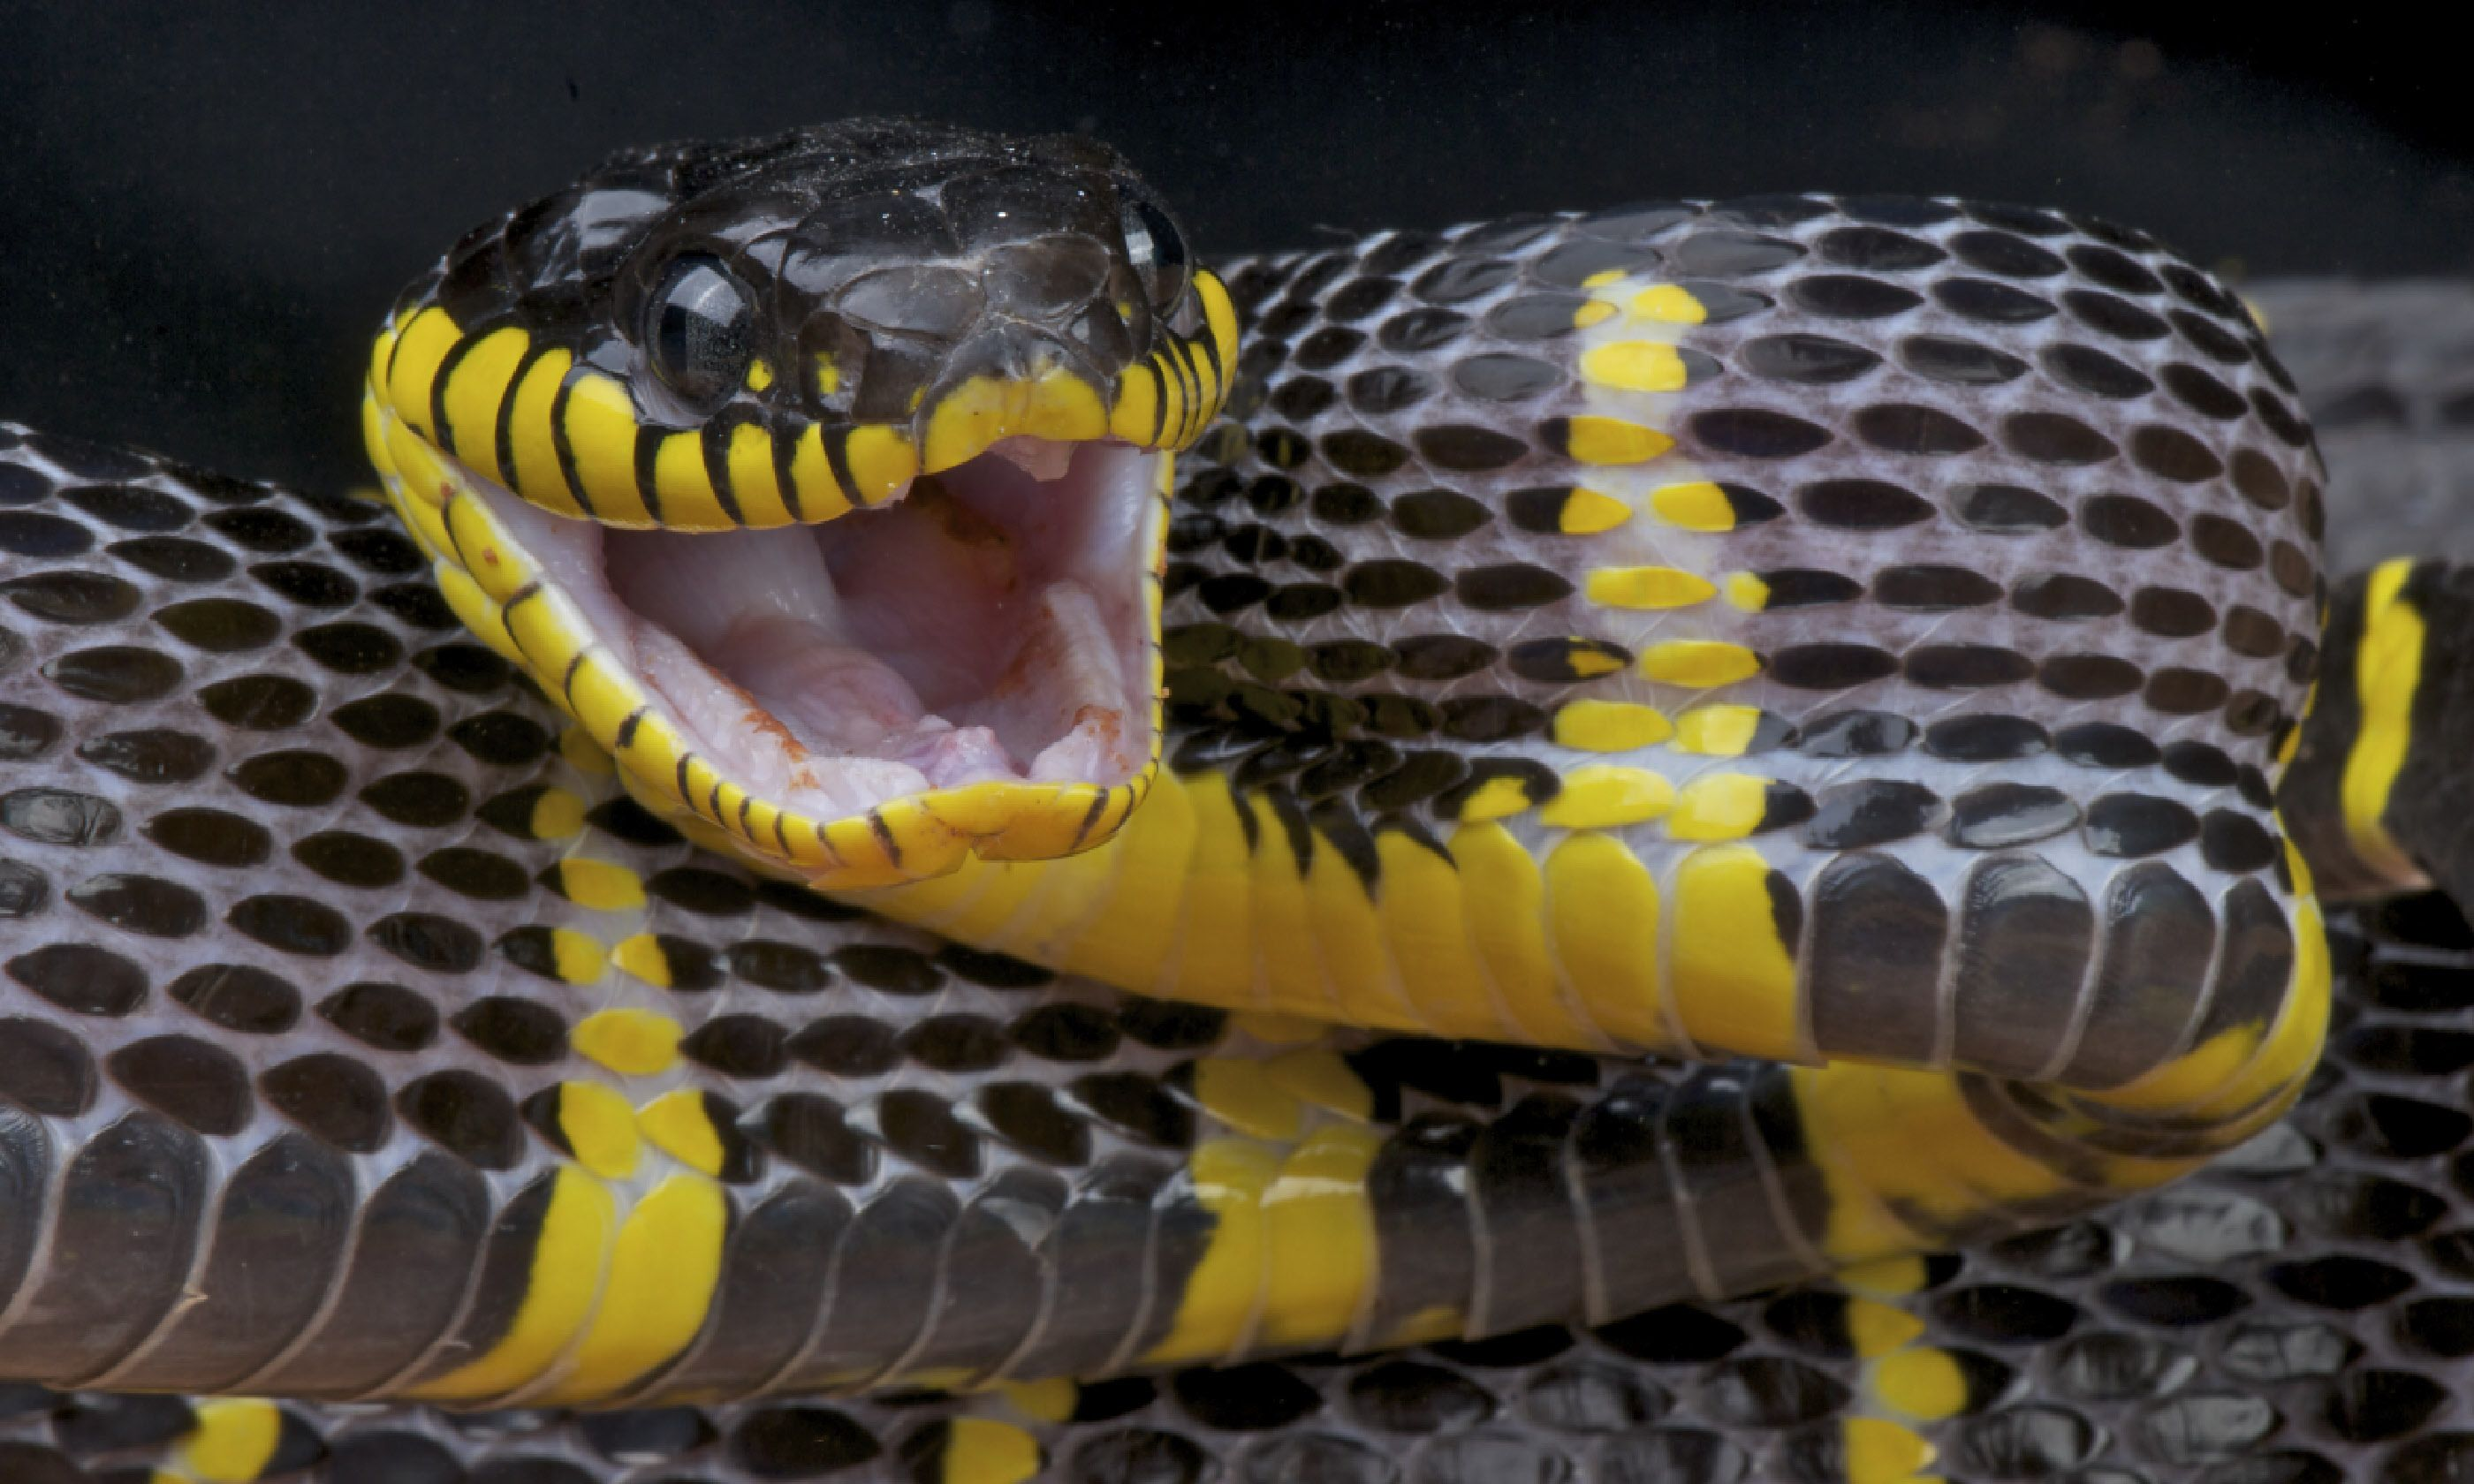 Attacking mangrove snake (Shutterstock)